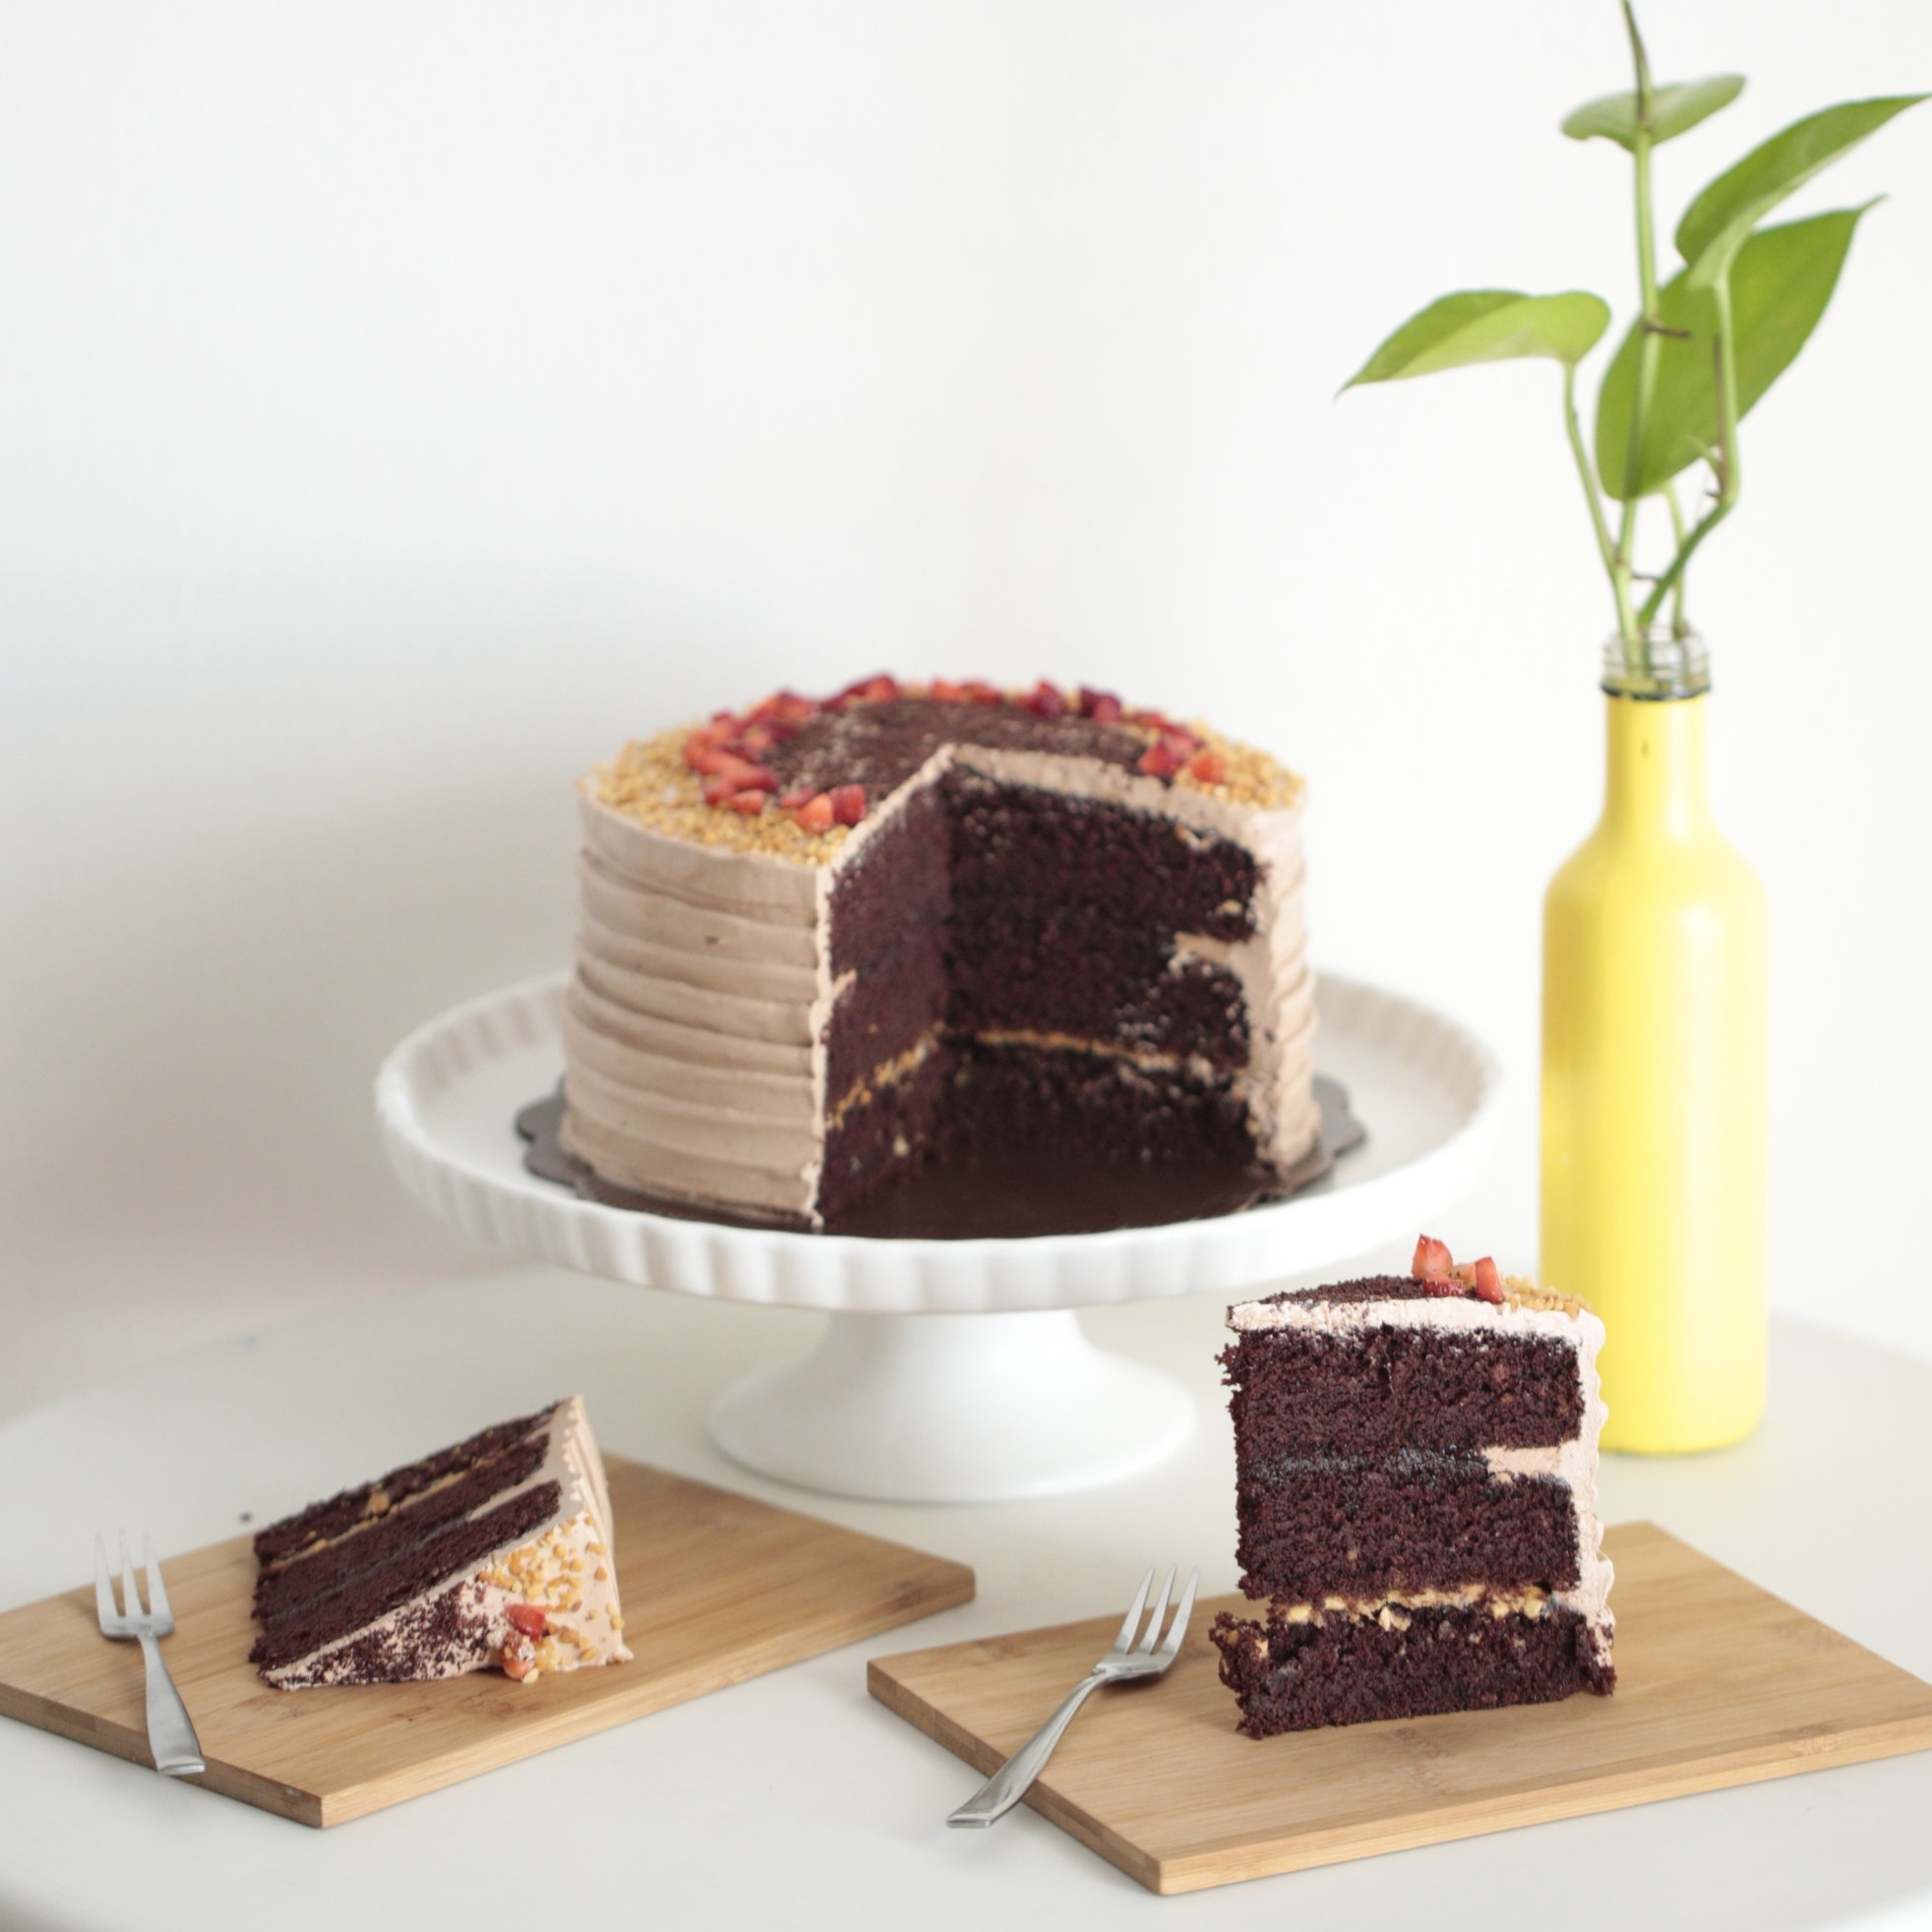 Chocolate PB&J - Ø18 cm - Rp. 300.000,-Ø22 cm -Rp. 450.000,-Ø26 cm - Rp. 600.000,-Extra moist chocolate cake layers filled with strawberry jam and peanut butter. Covered with chocolate buttercream and topped with peanuts, strawberries, and shaved chocolate.